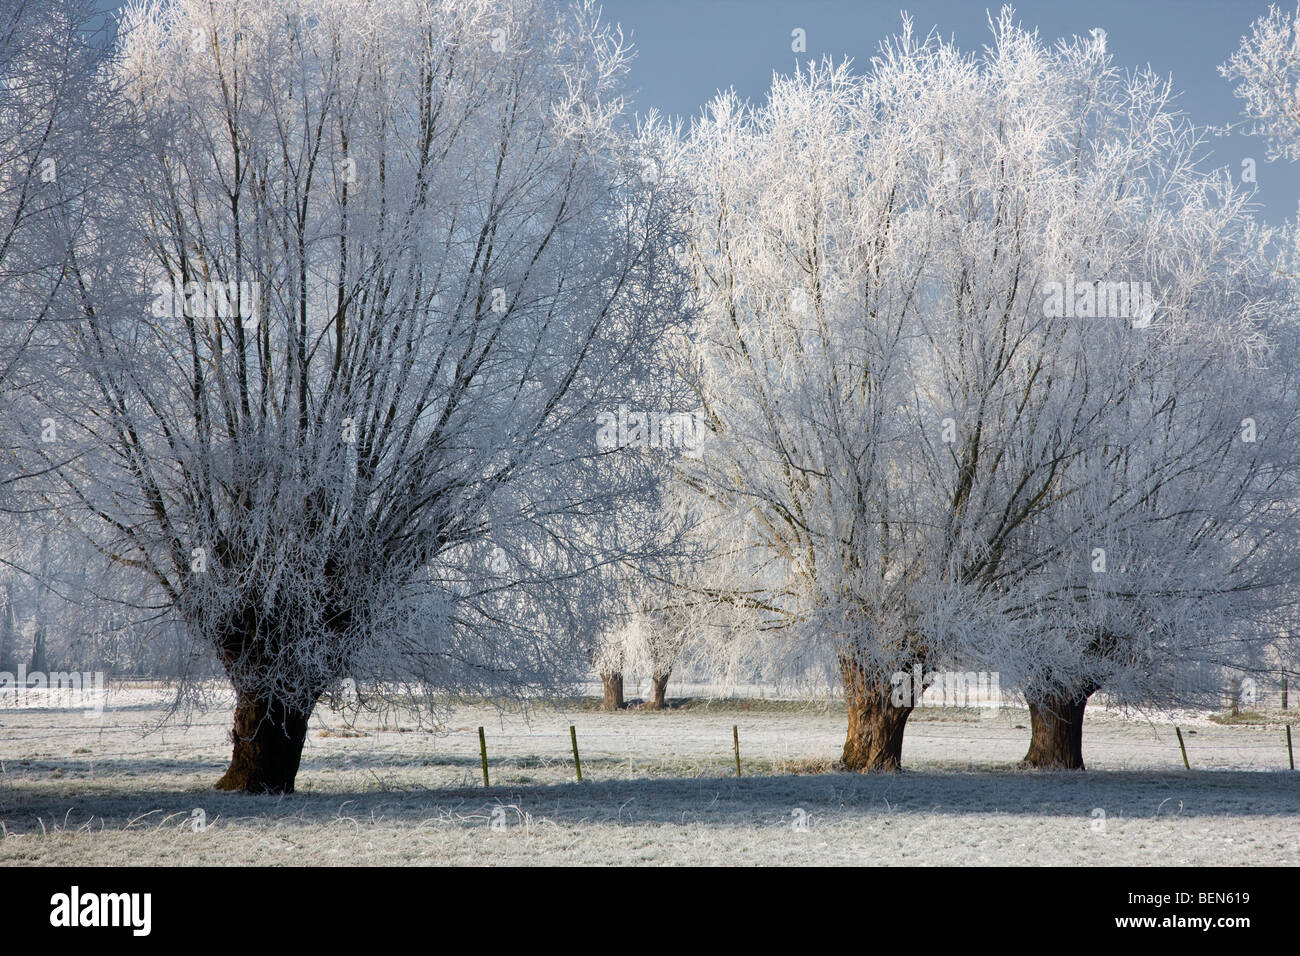 Pollard willows (Salix sp.) covered in hoarfrost in winter, Belgium - Stock Image